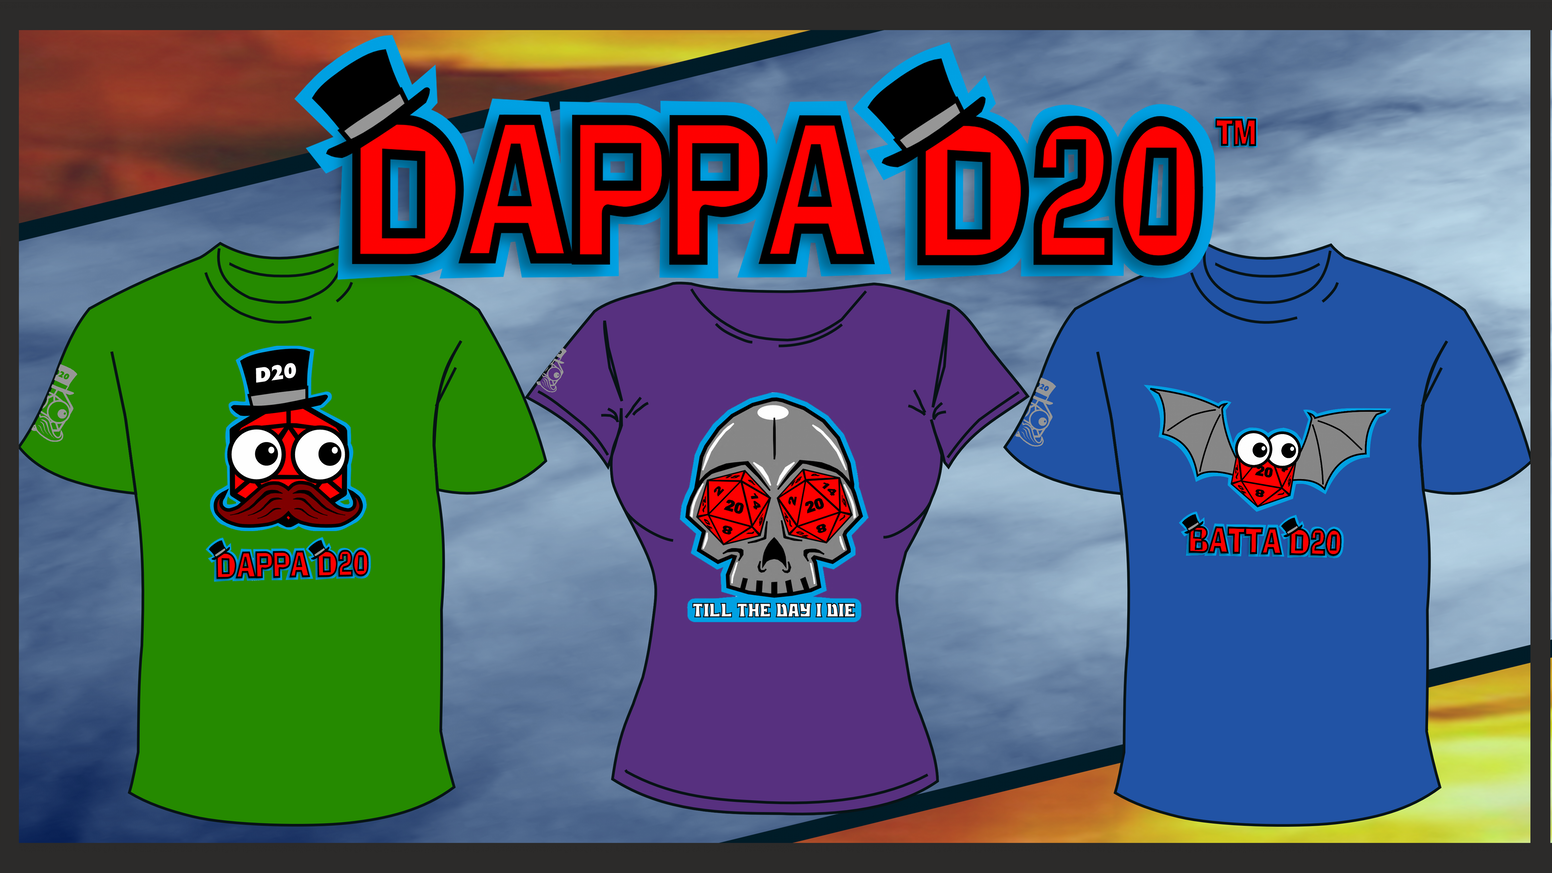 Dappa clothing for seasoned Gamer's. Showcase your passion for tabletop gaming and RPG for everyone to see. Bring on the dice!